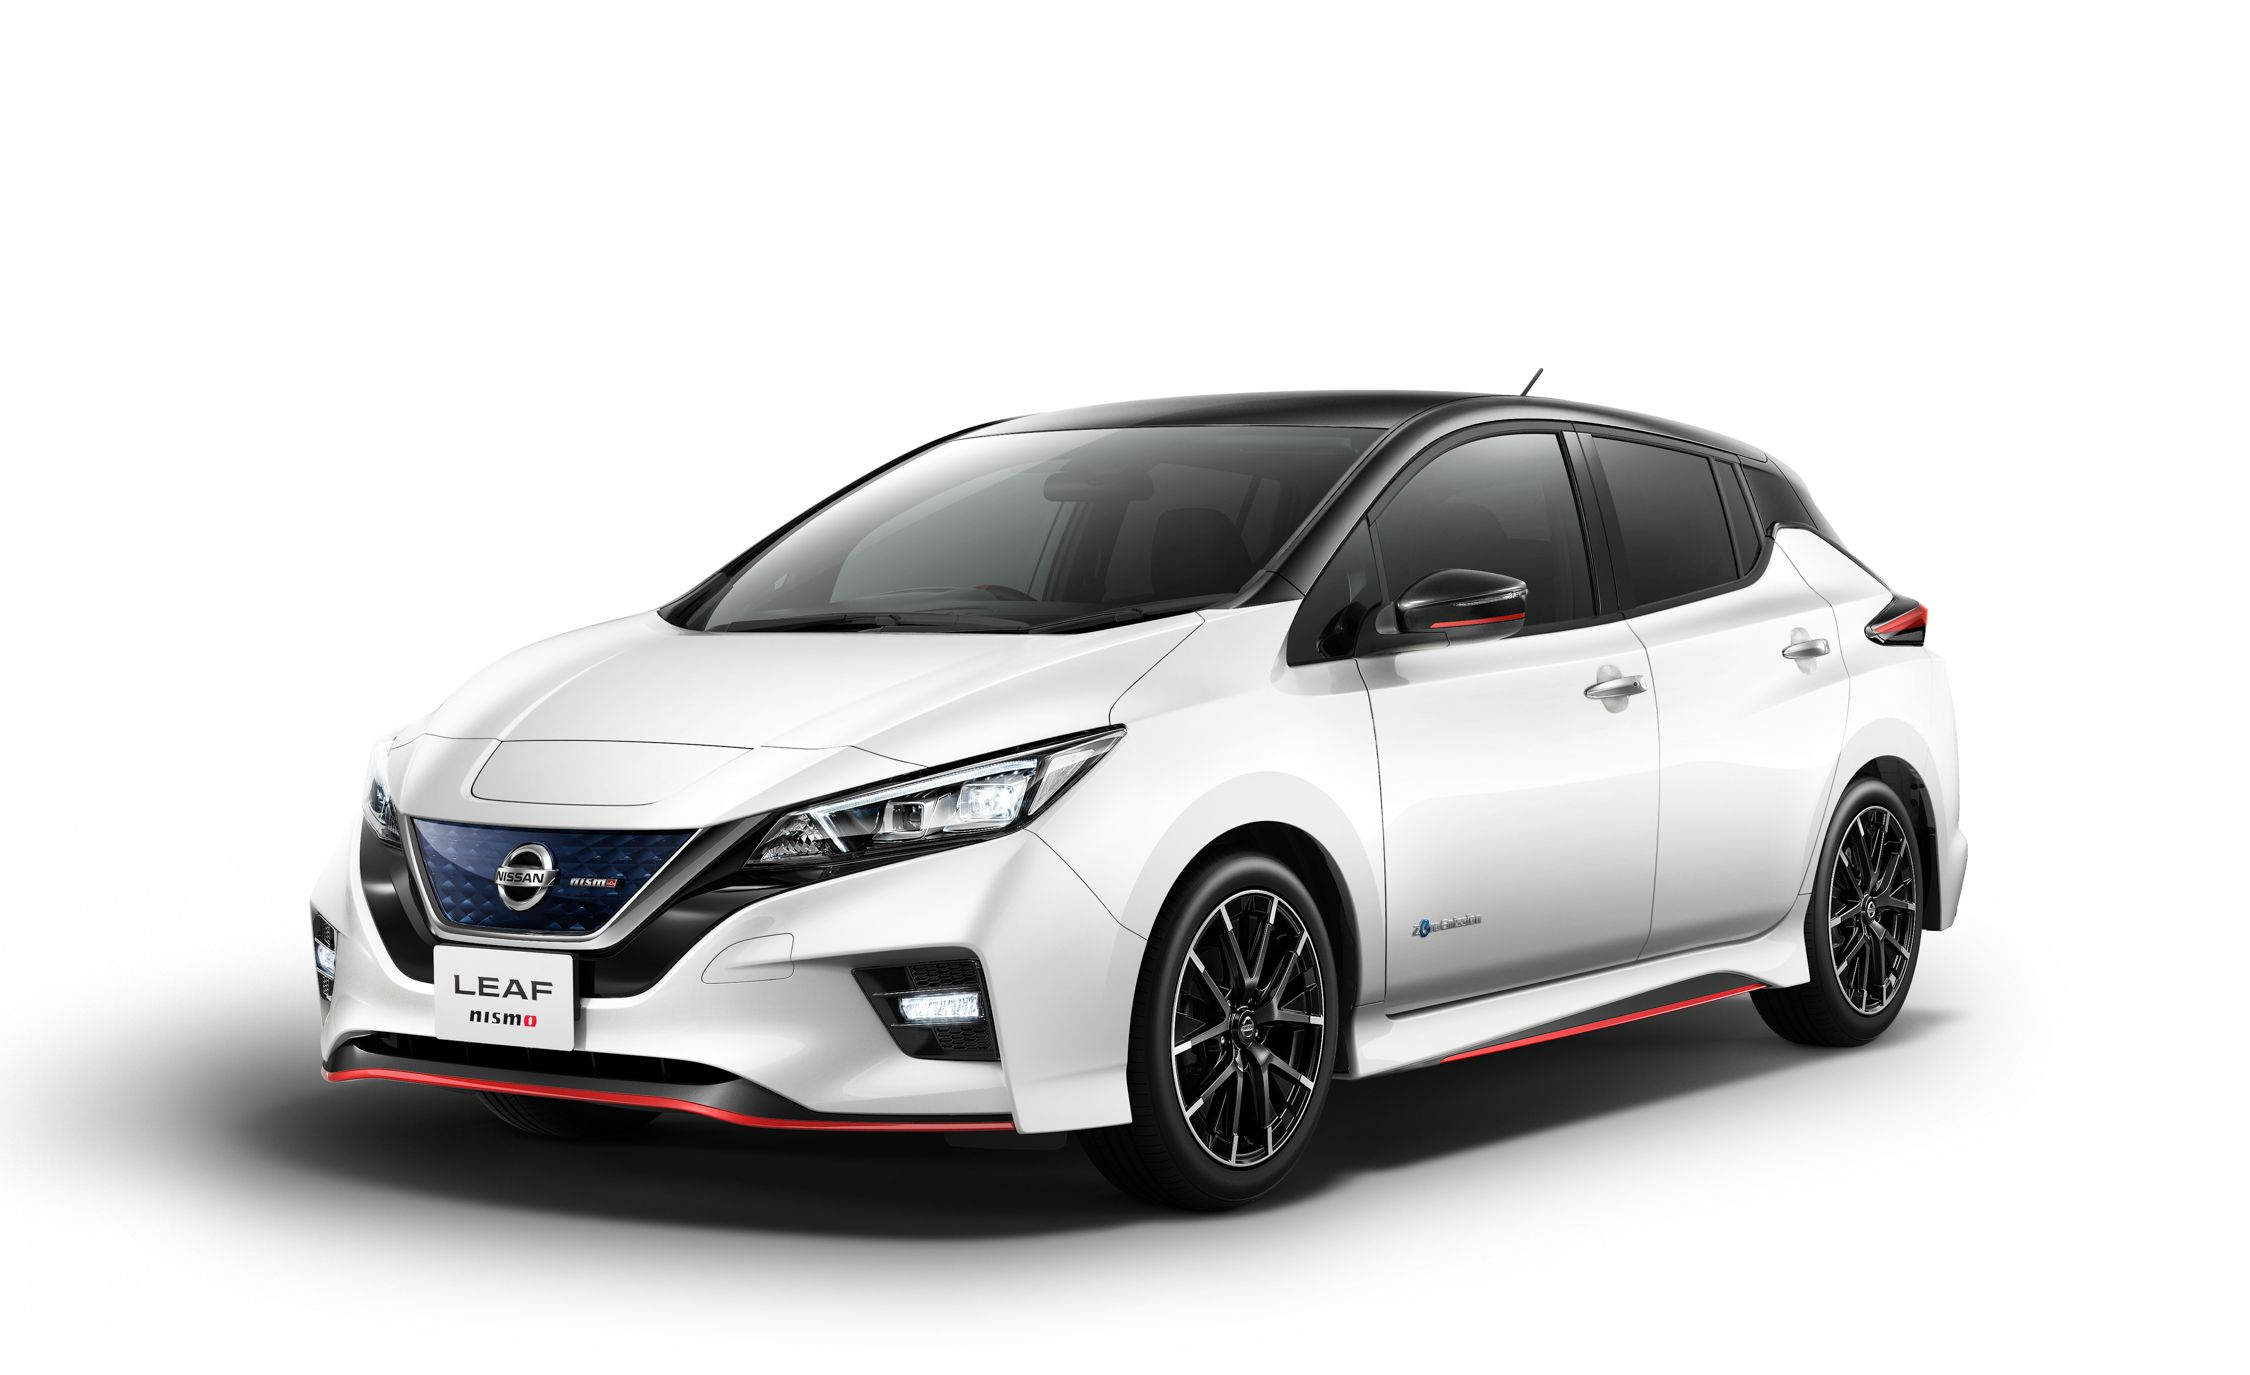 Nissan Leaf Nismo Adds Sporty Style Though Not Much Actual Sportiness